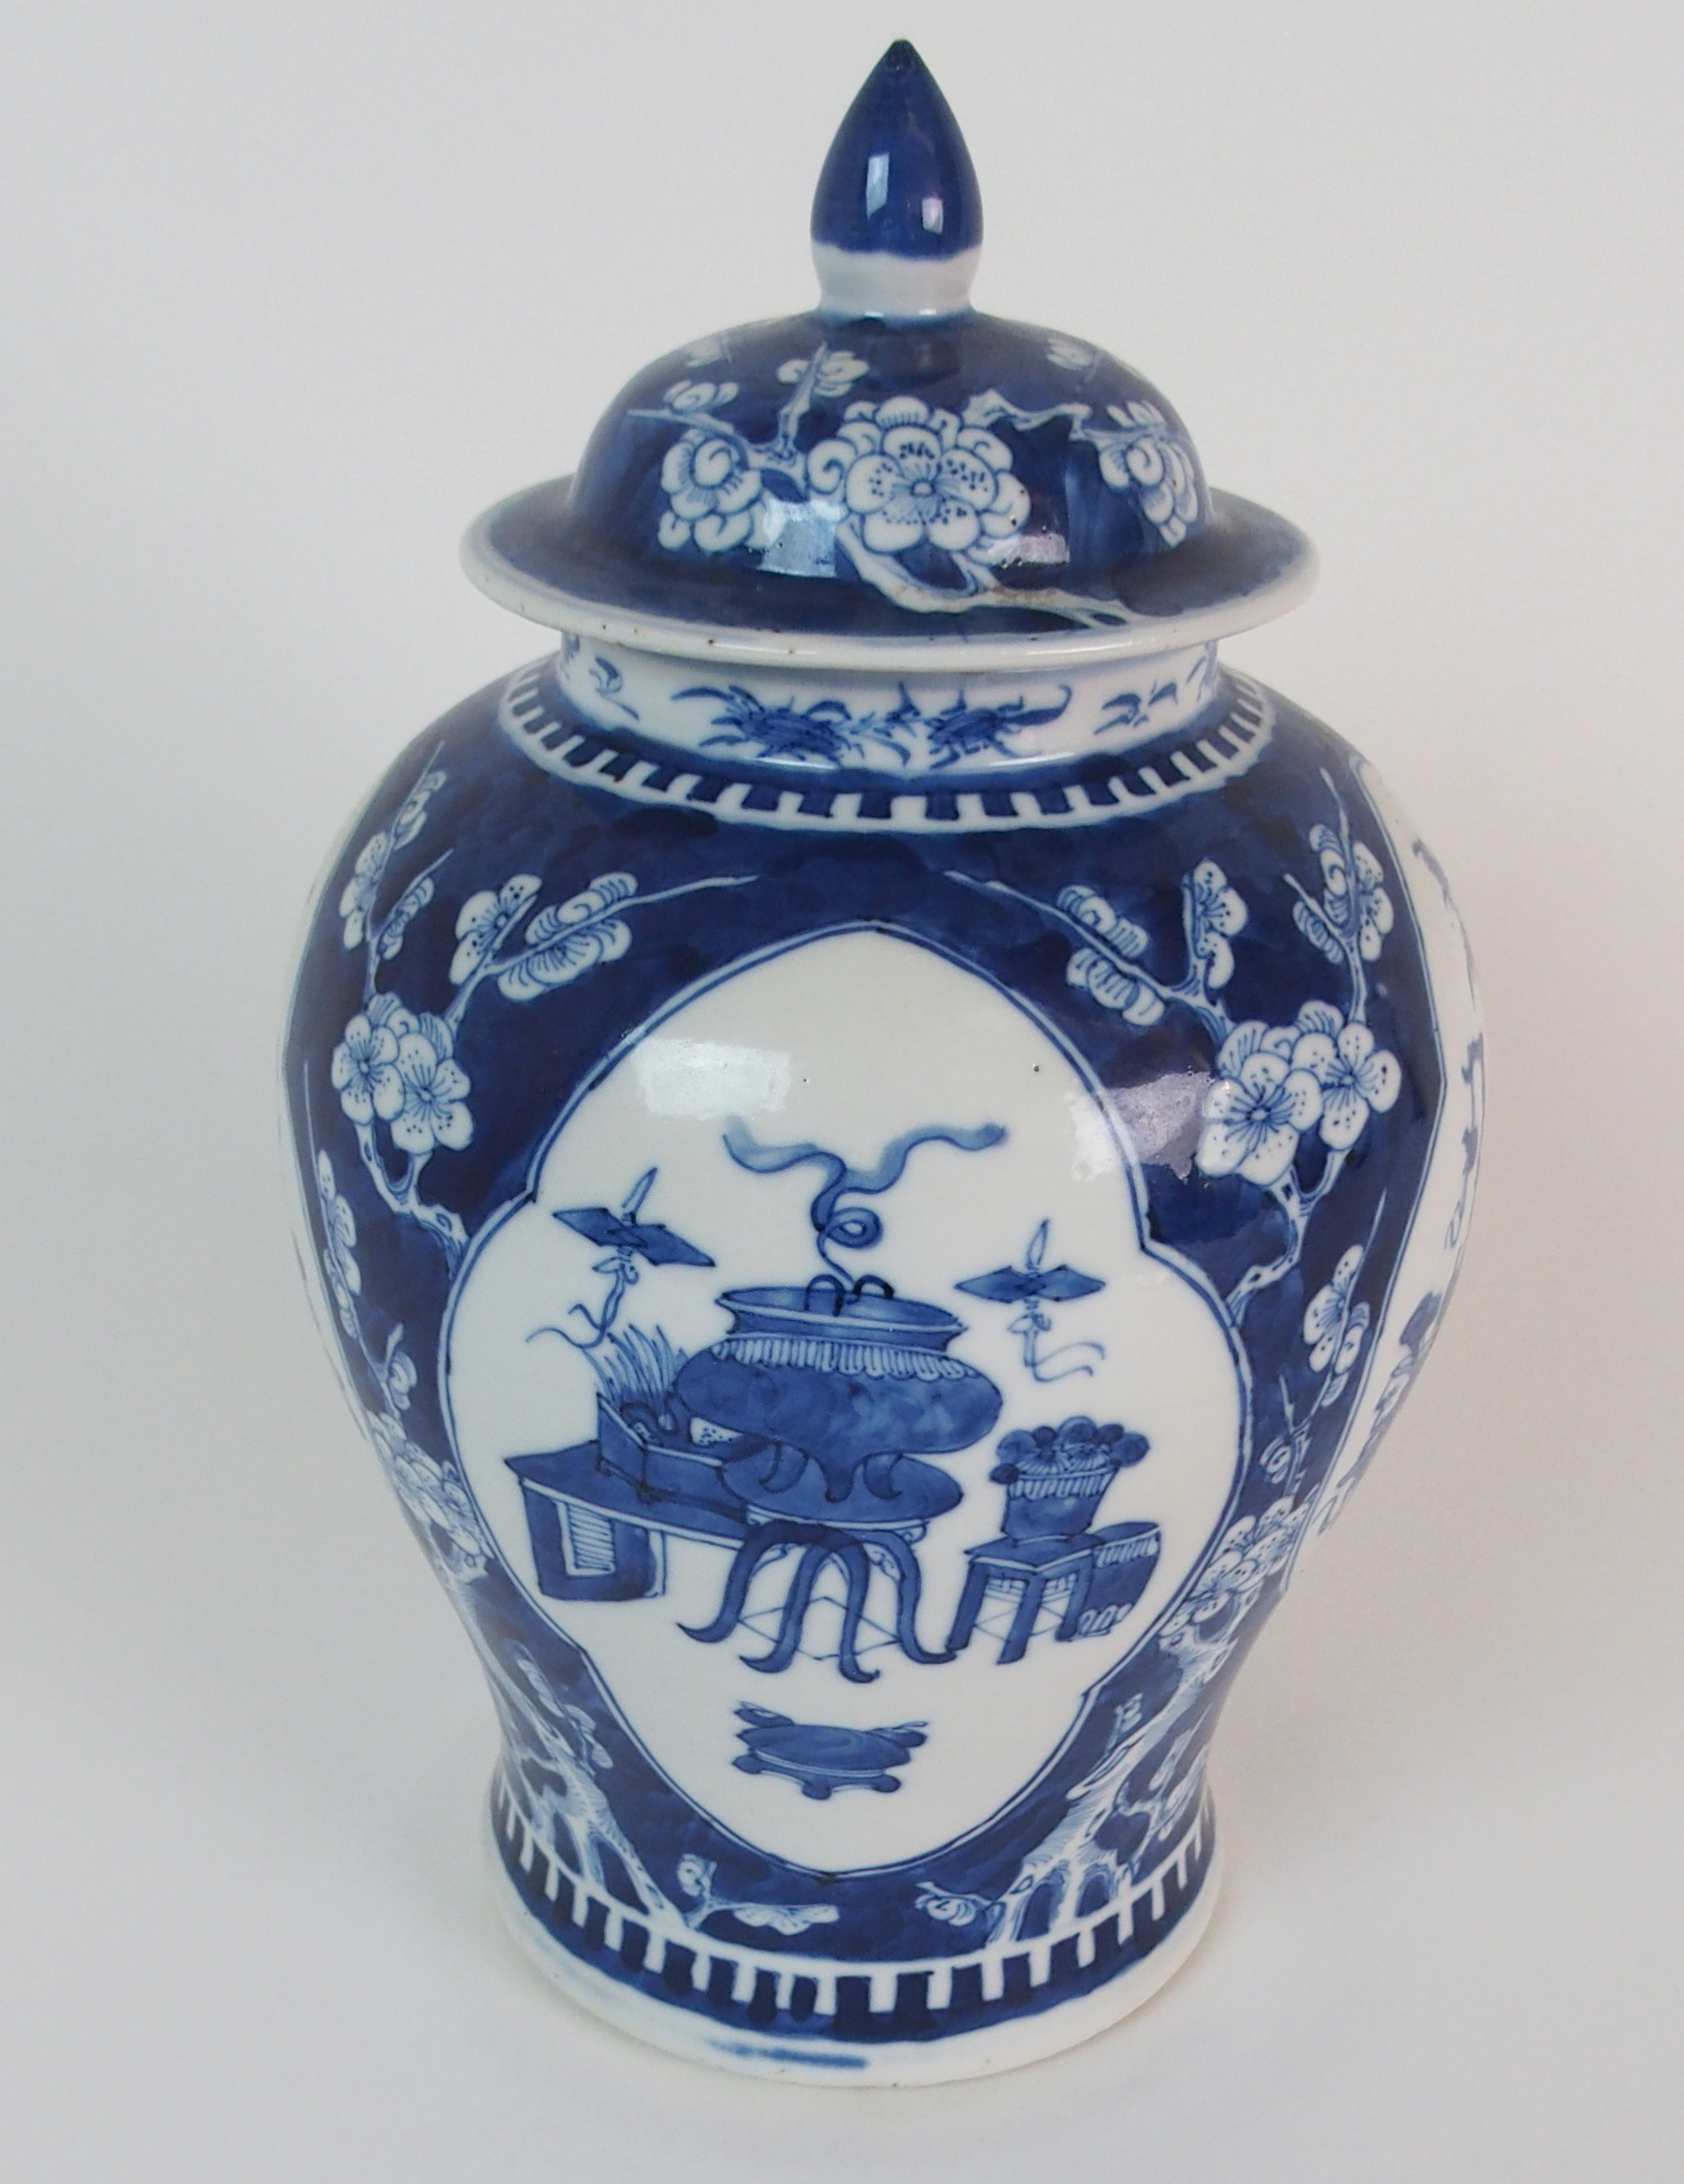 Lot 58 - A CHINESE BLUE AND WHITE BALUSTER VASE AND COVER painted with panels of precious objects divided